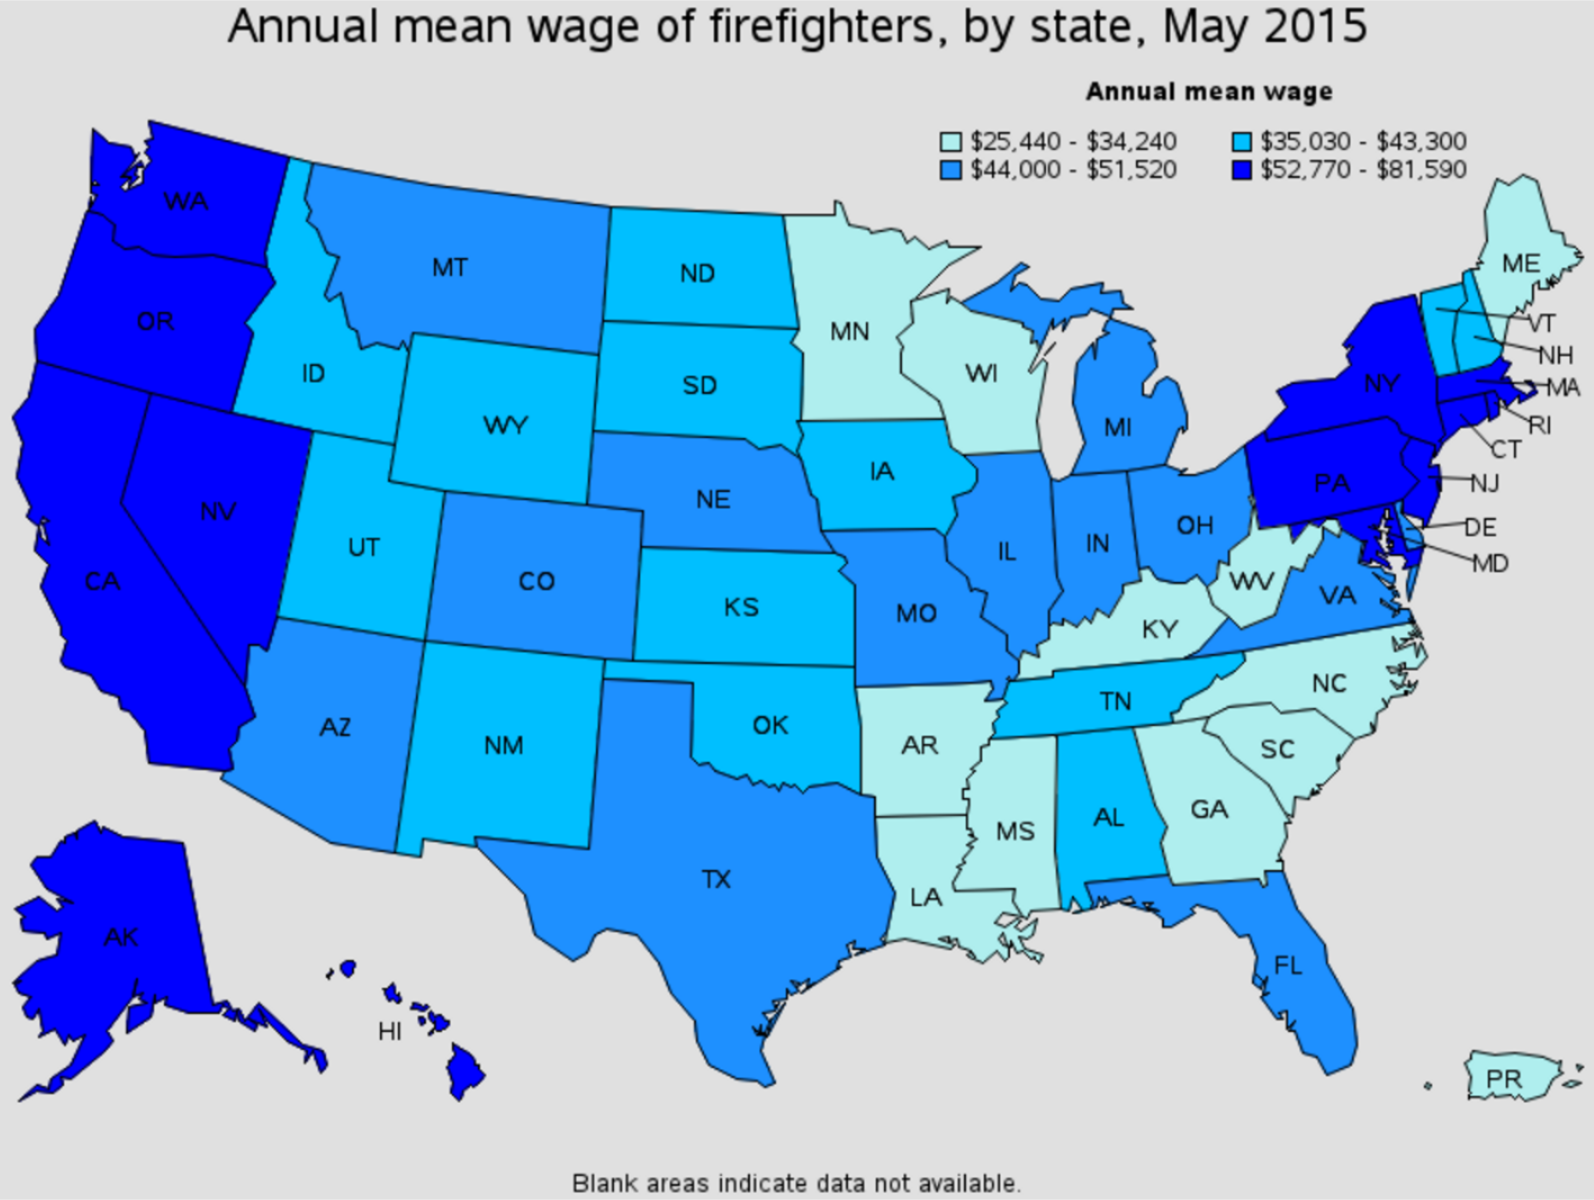 firefighter average salary by state Vienna Virginia